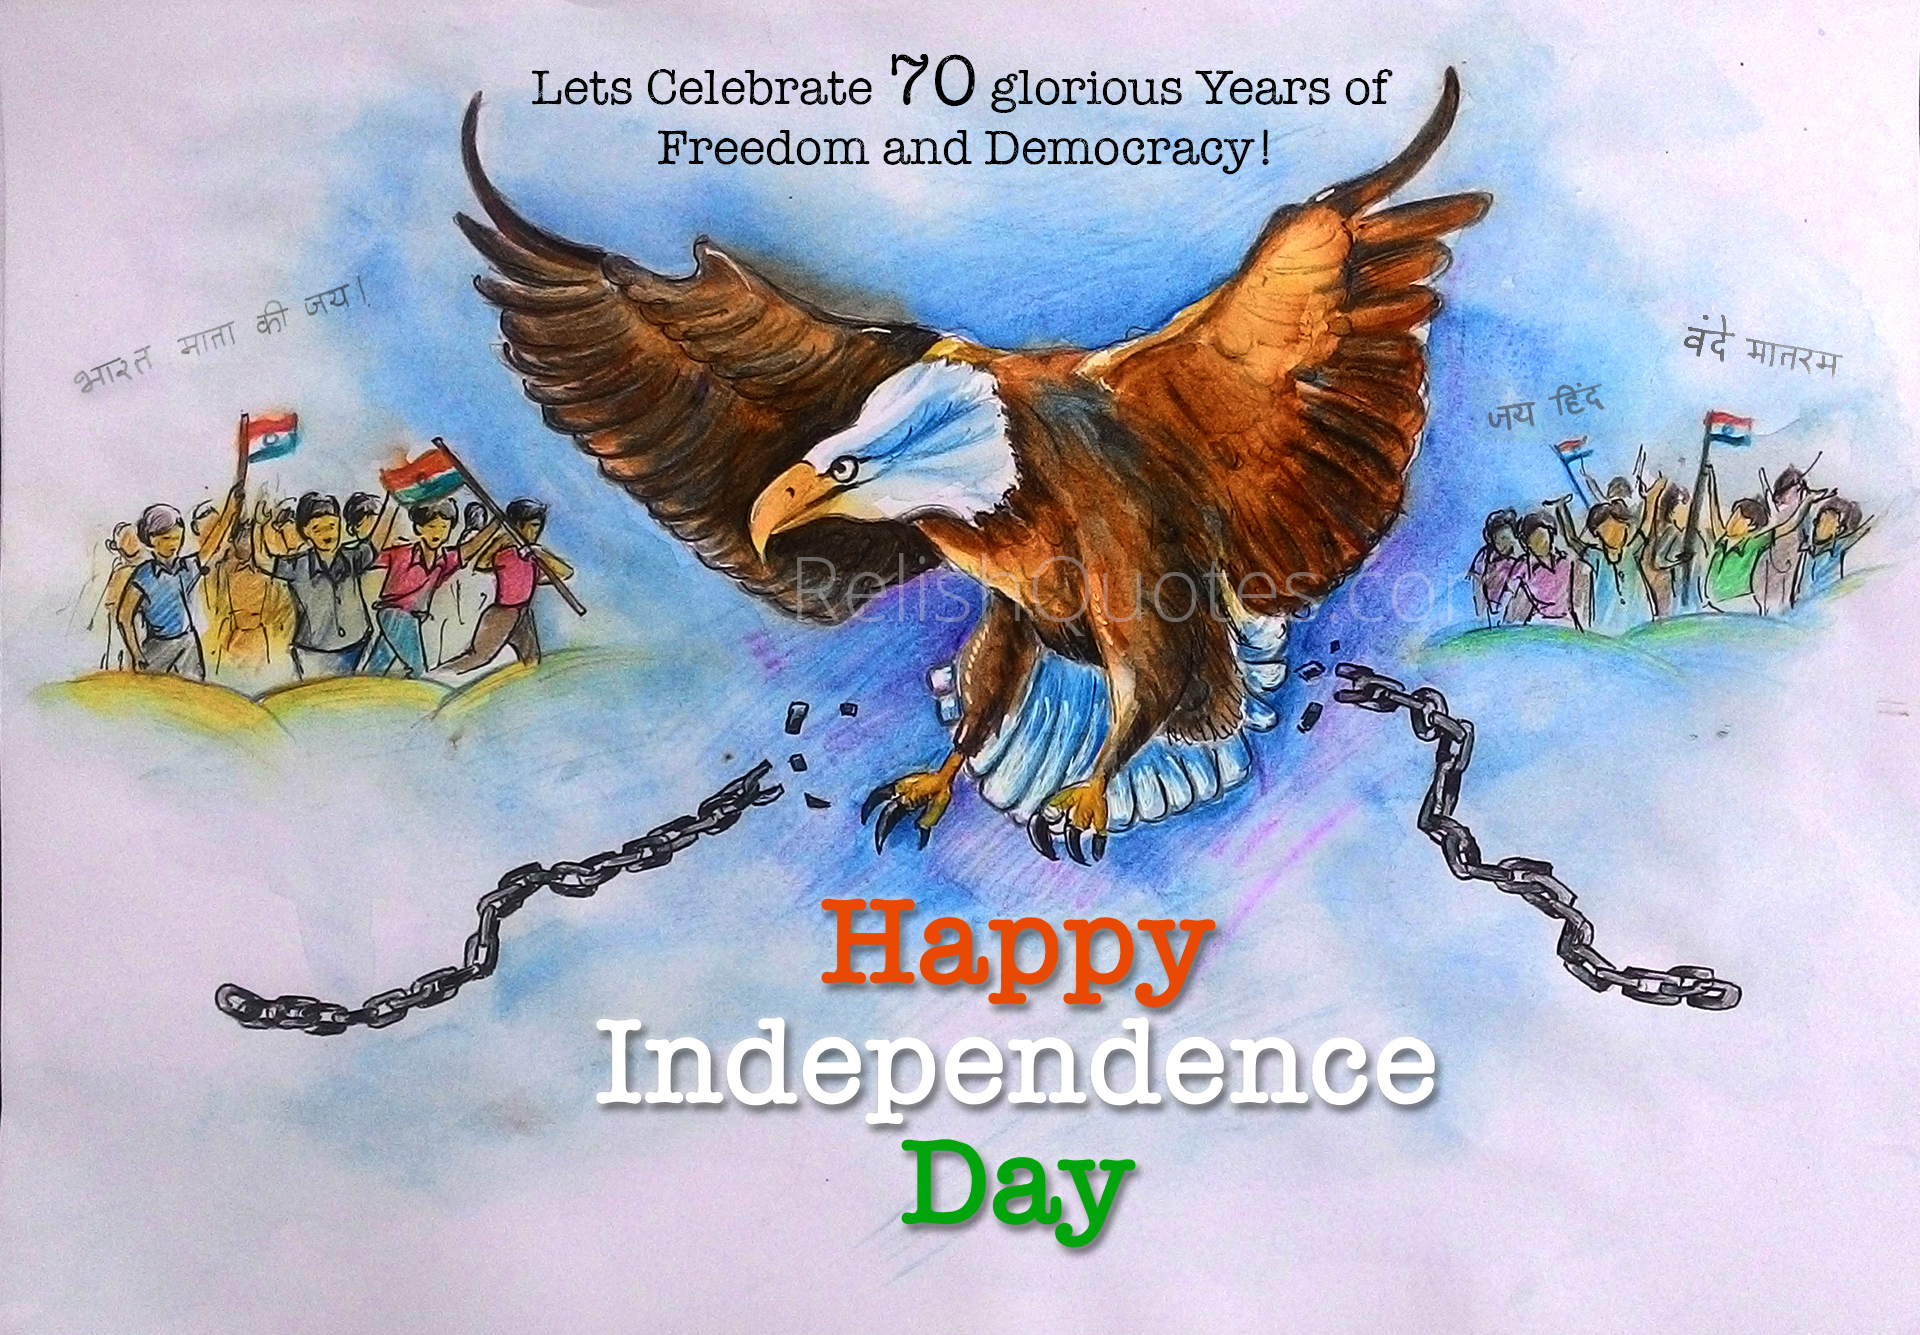 Happy Independence Day 2016 India, Lets Celebrate 70 Years of Freedom!